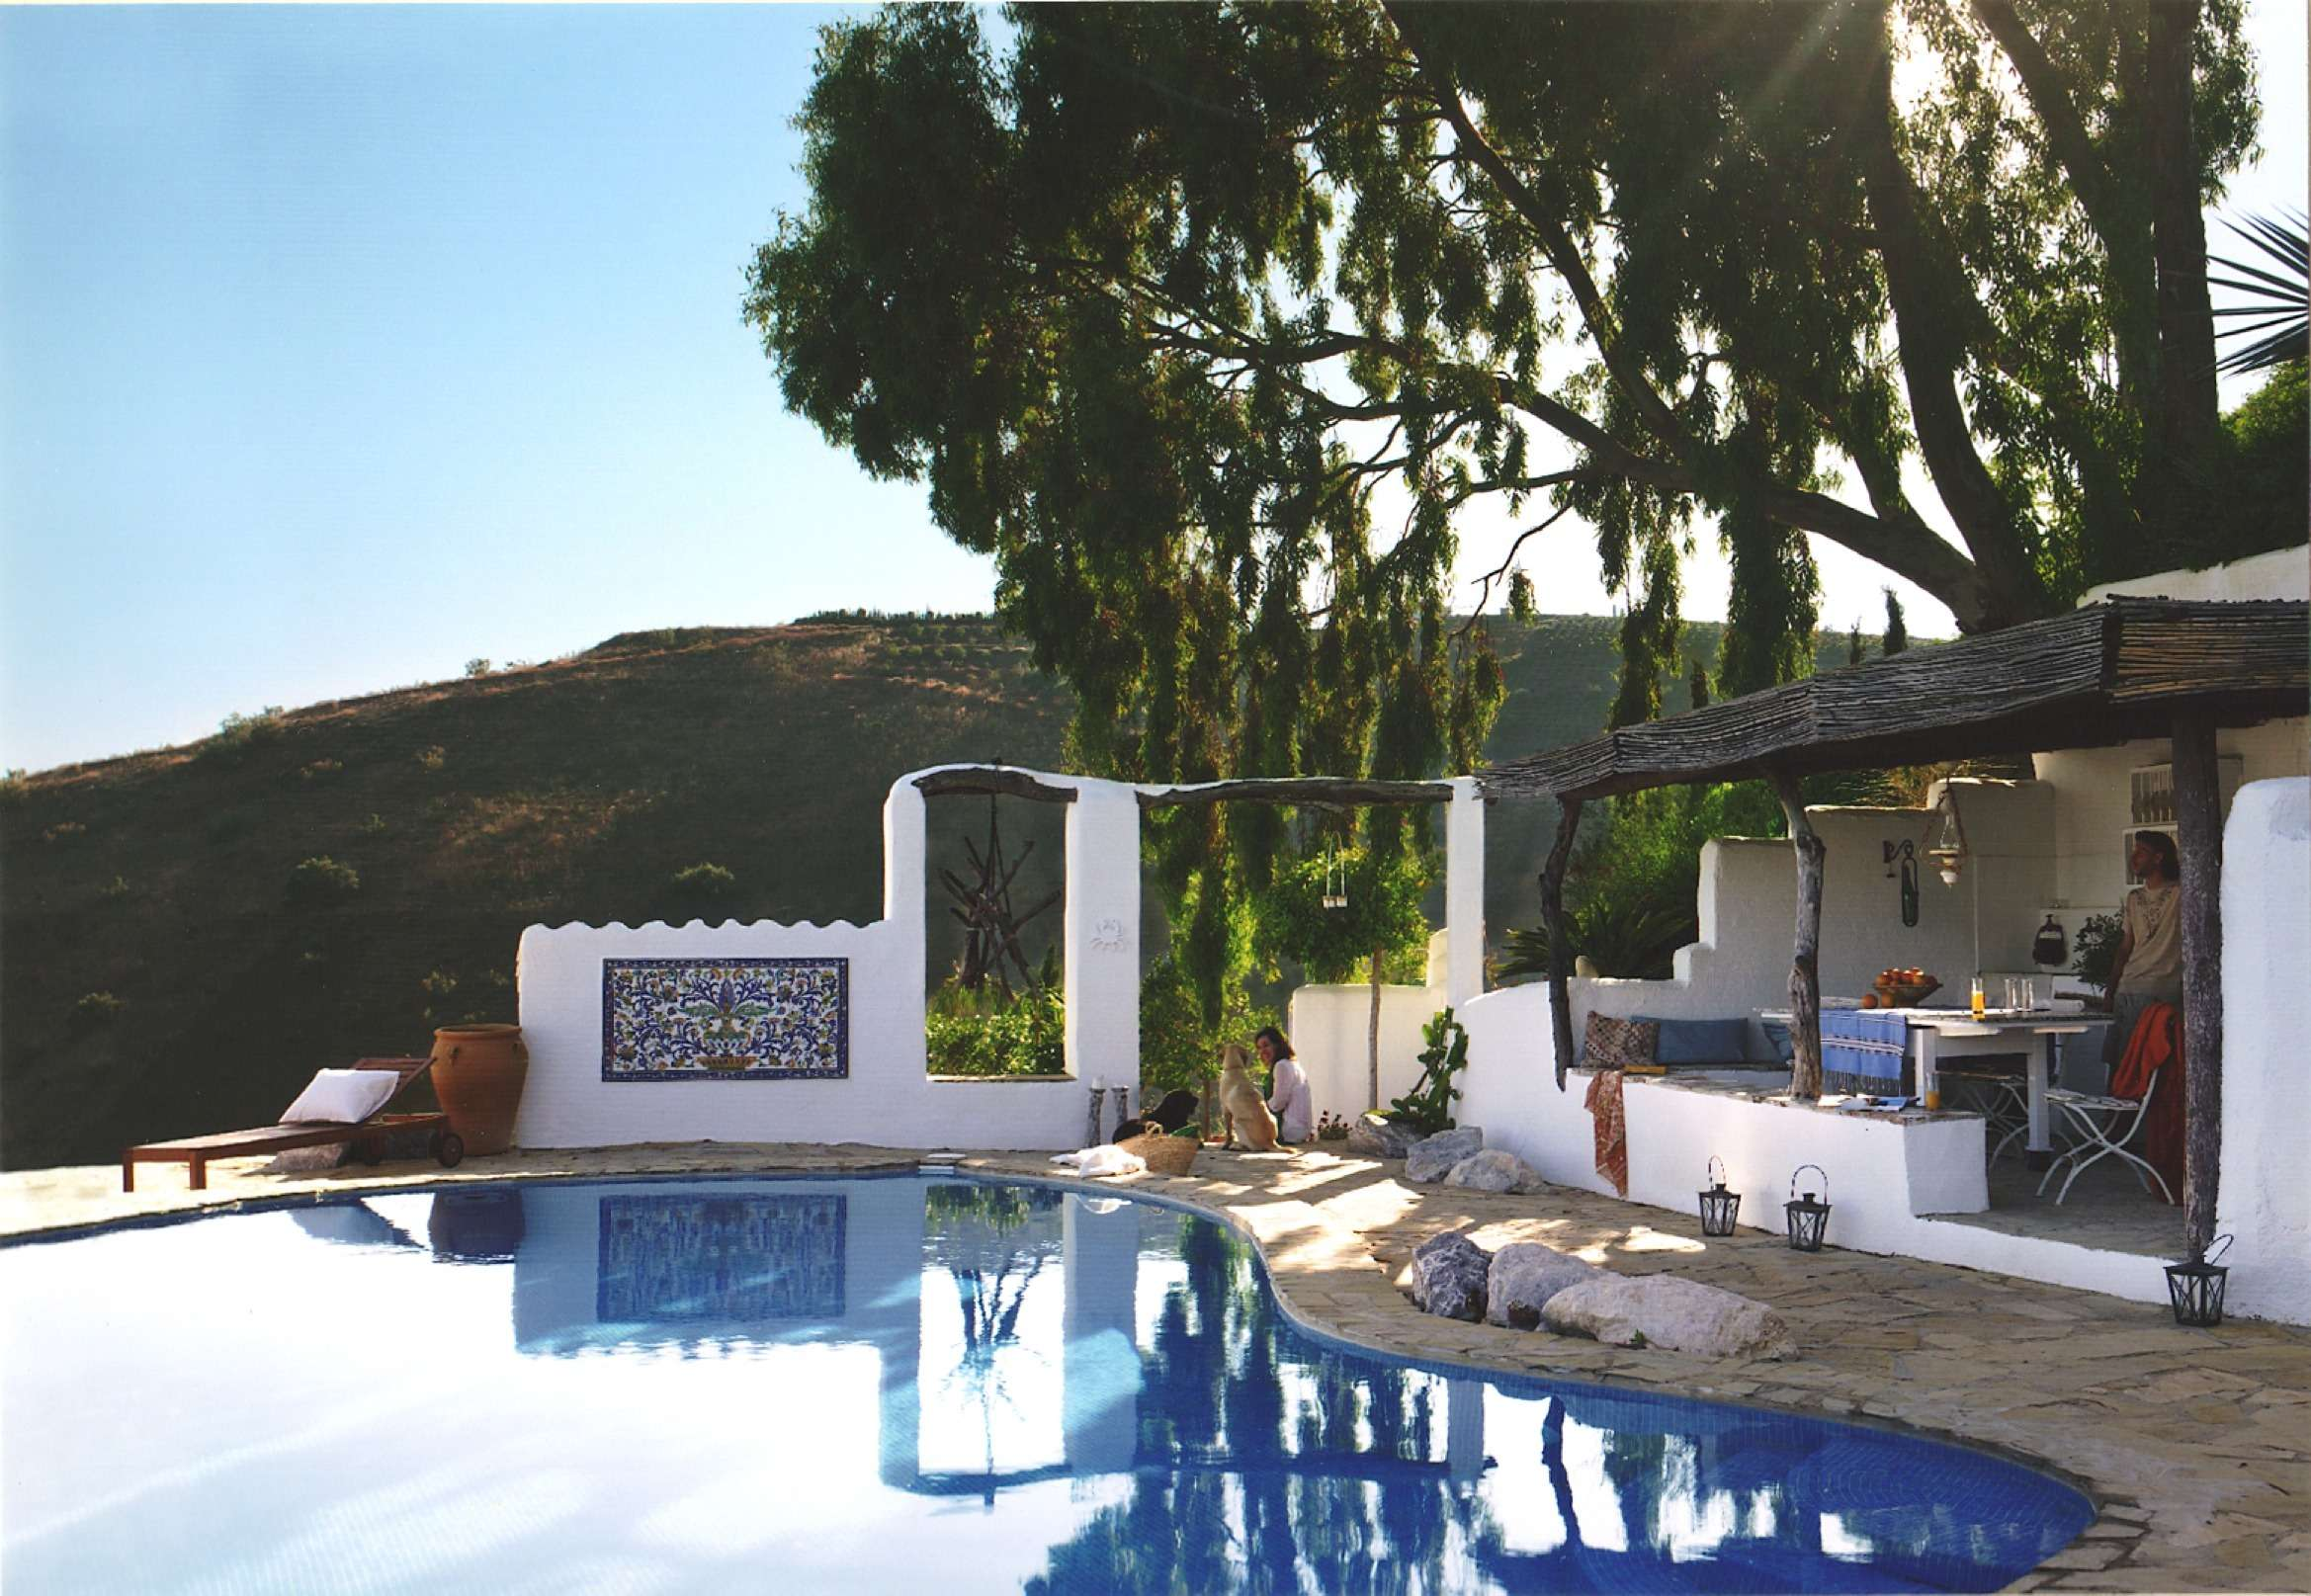 Swimming pool and outdoor dining room at Villa El Carligto in Spain